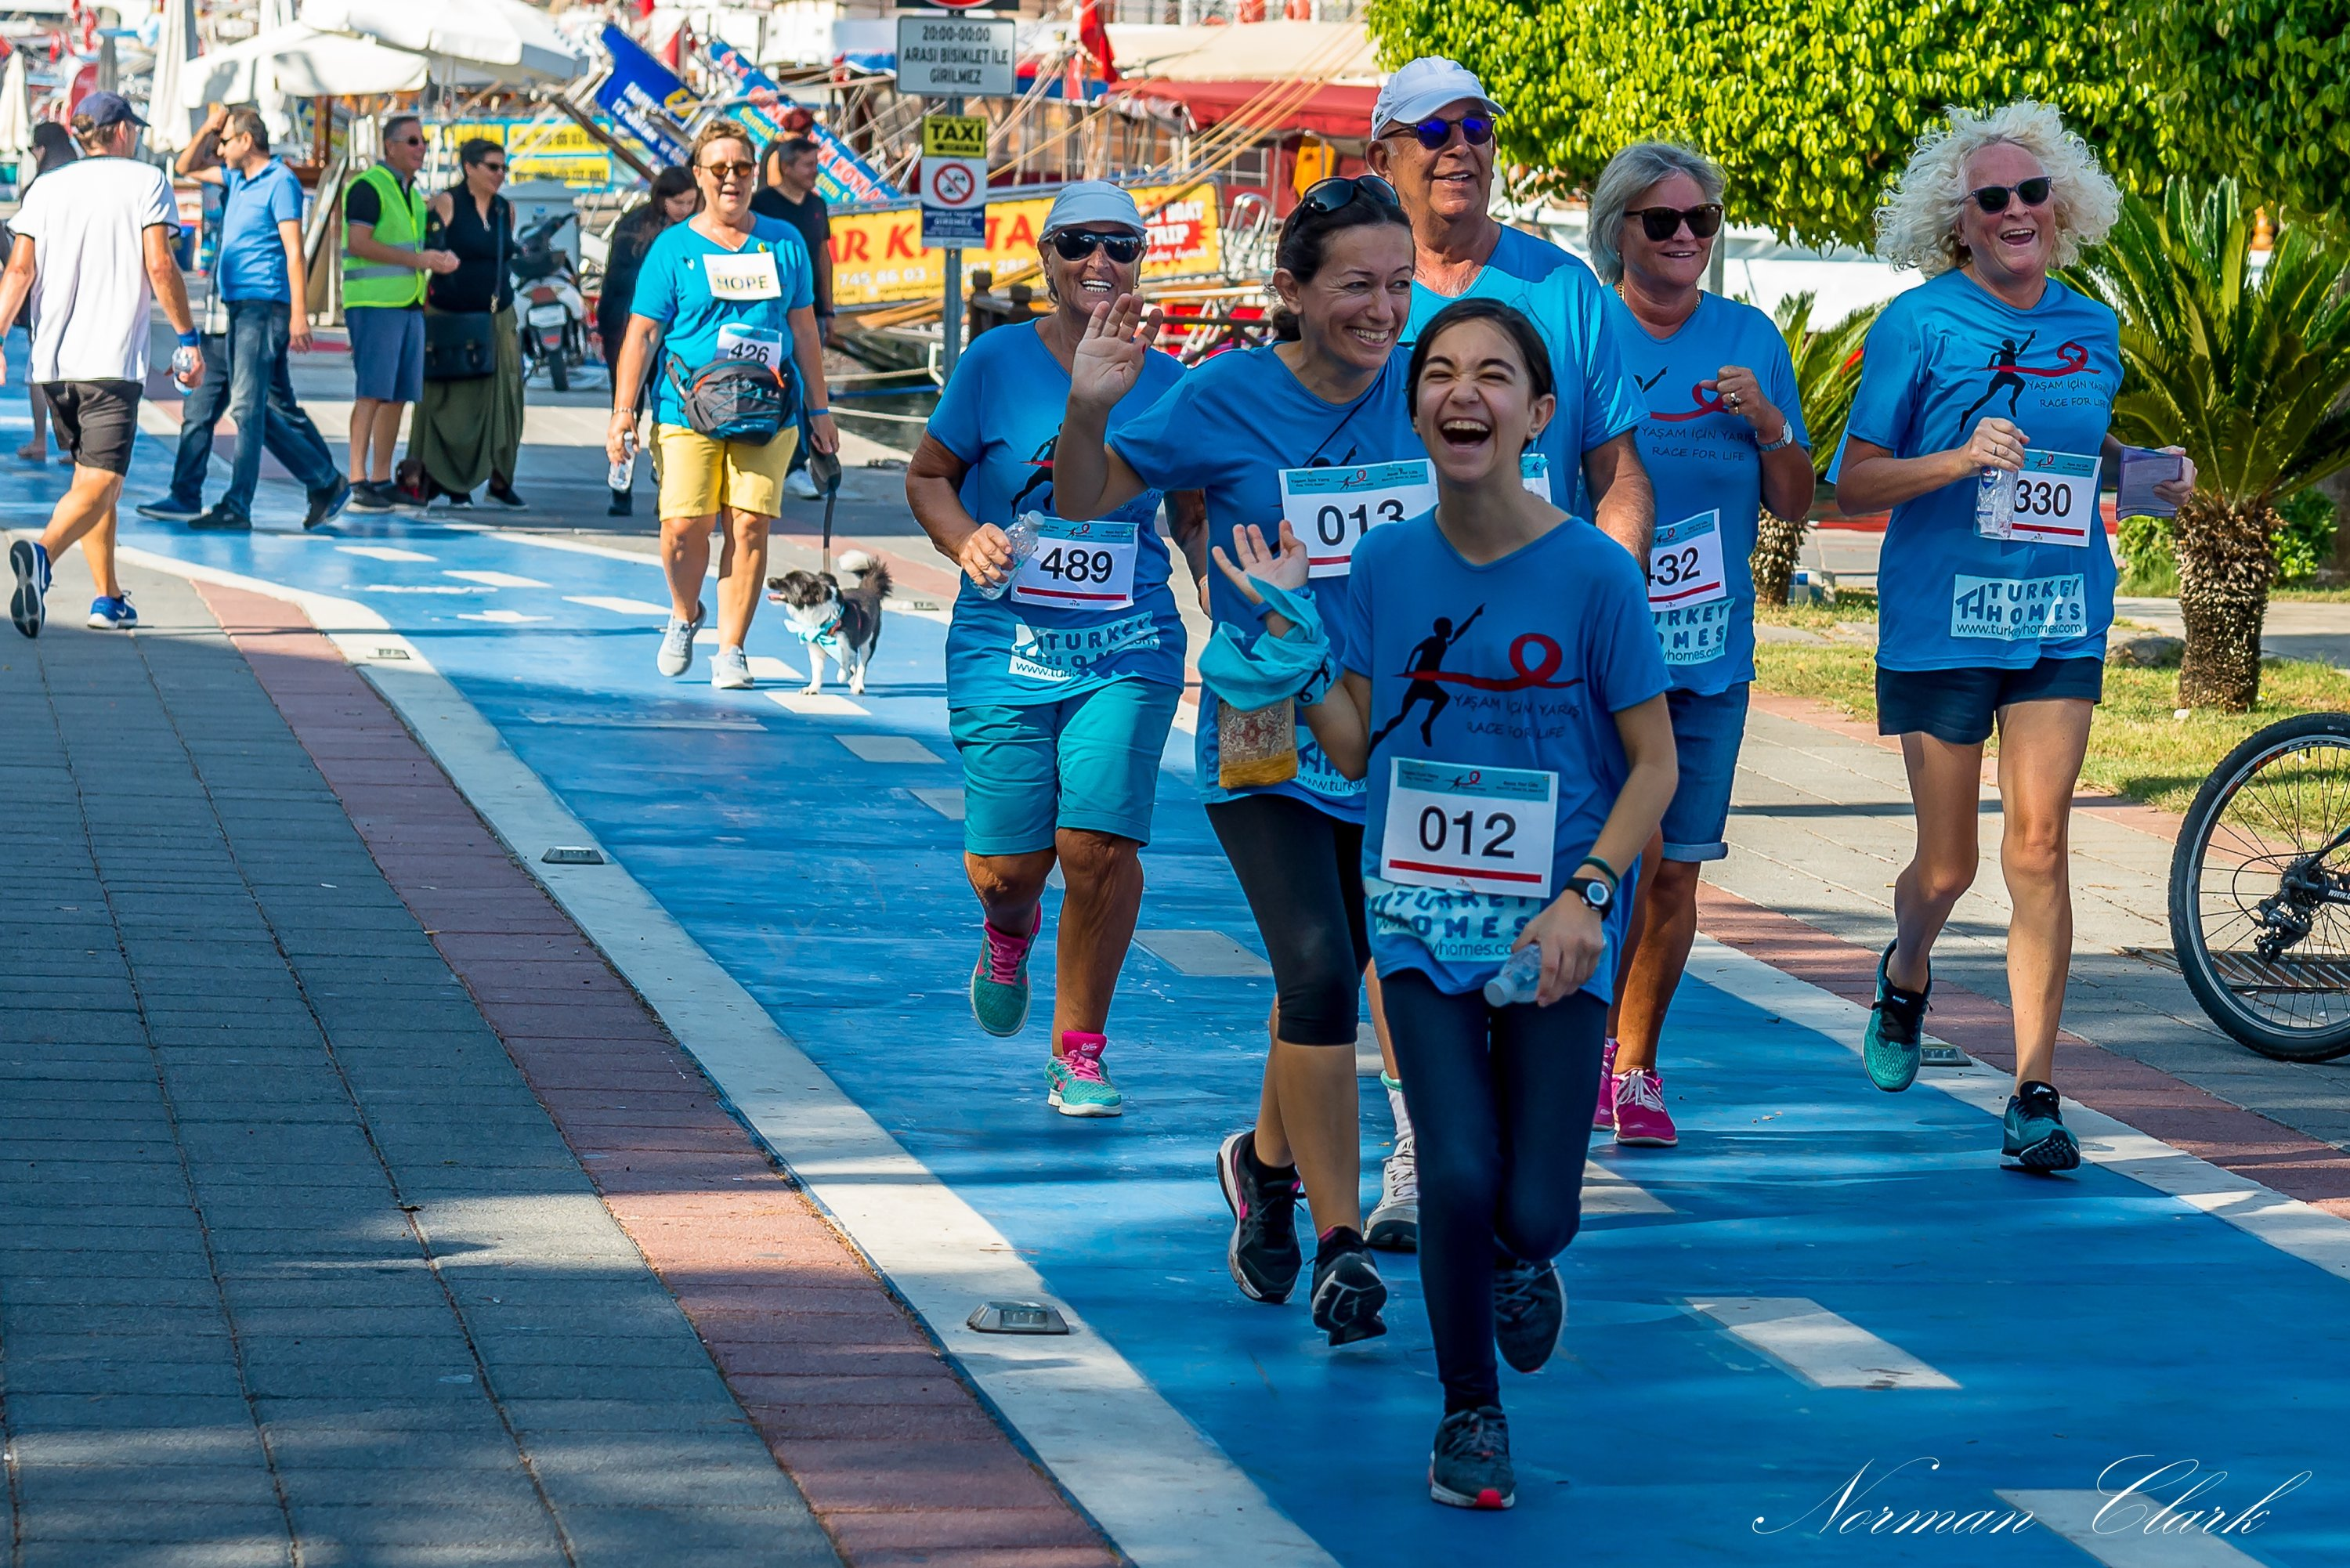 People run as part of the charity run Race for Life to benefit cancer patients in Fethiye, southwestern Turkey, October 2019. (Courtesy of Race For Life)